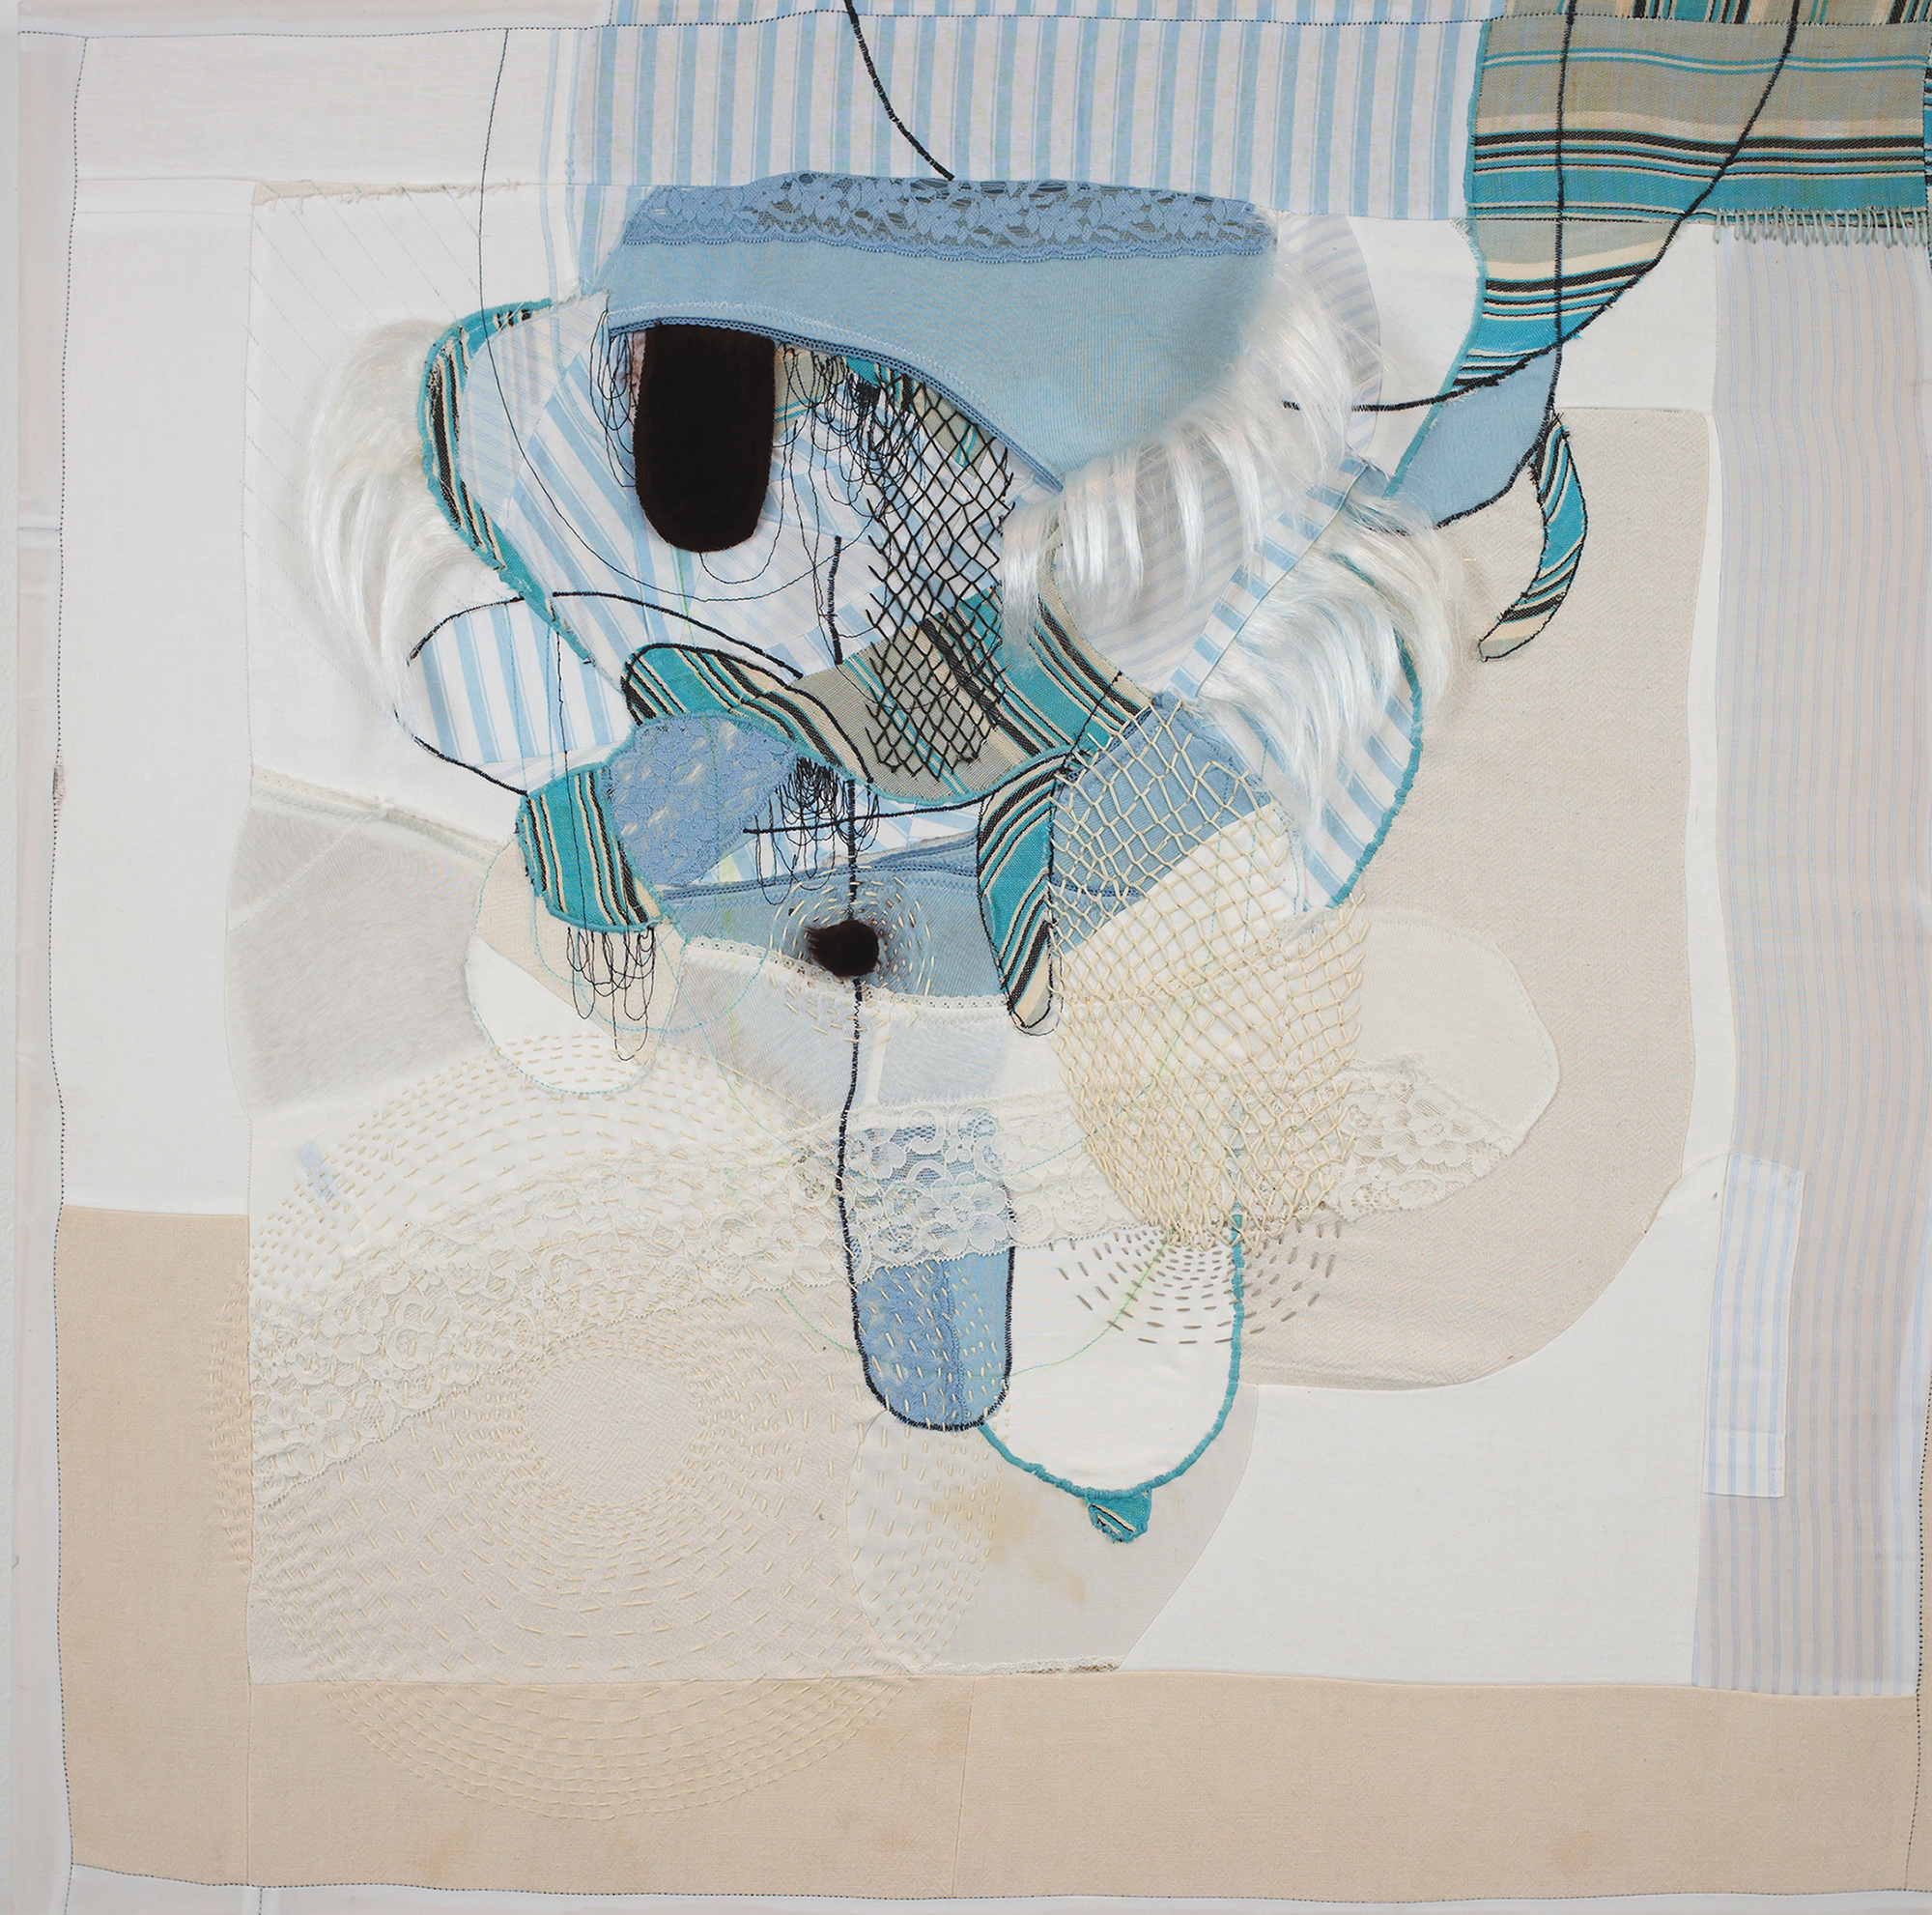 Blue Bunches  Jessica Wohl 2014 Napkins, pillowcases, shirts underwear, faux fur, synthetic hair, embroidery and machine quilting 29 x 29 inches